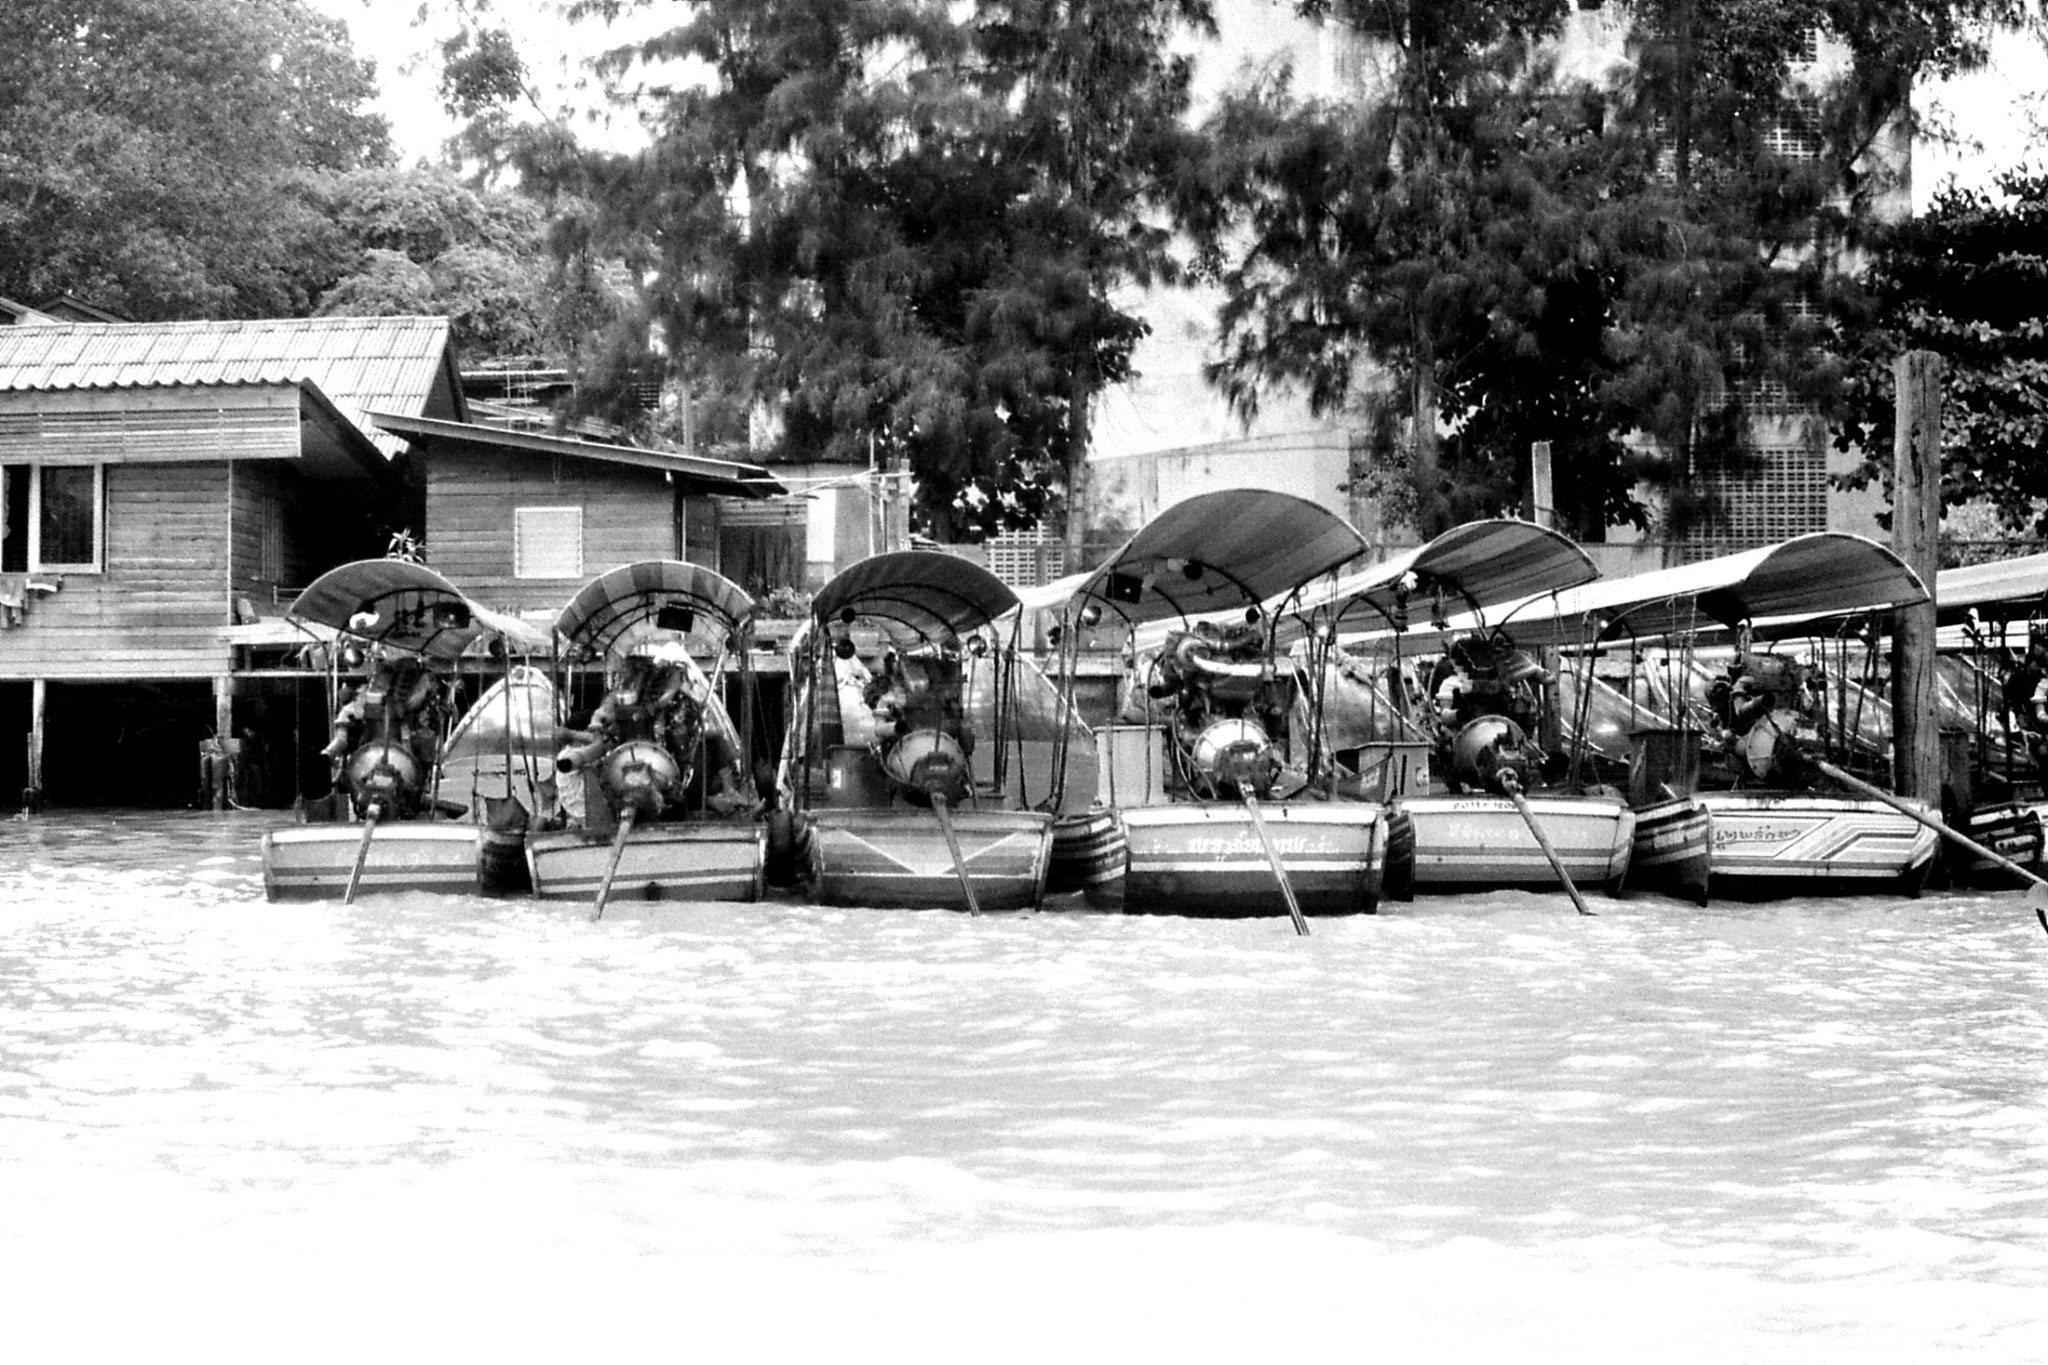 17/6/1990: 24: Bangkok, on the river